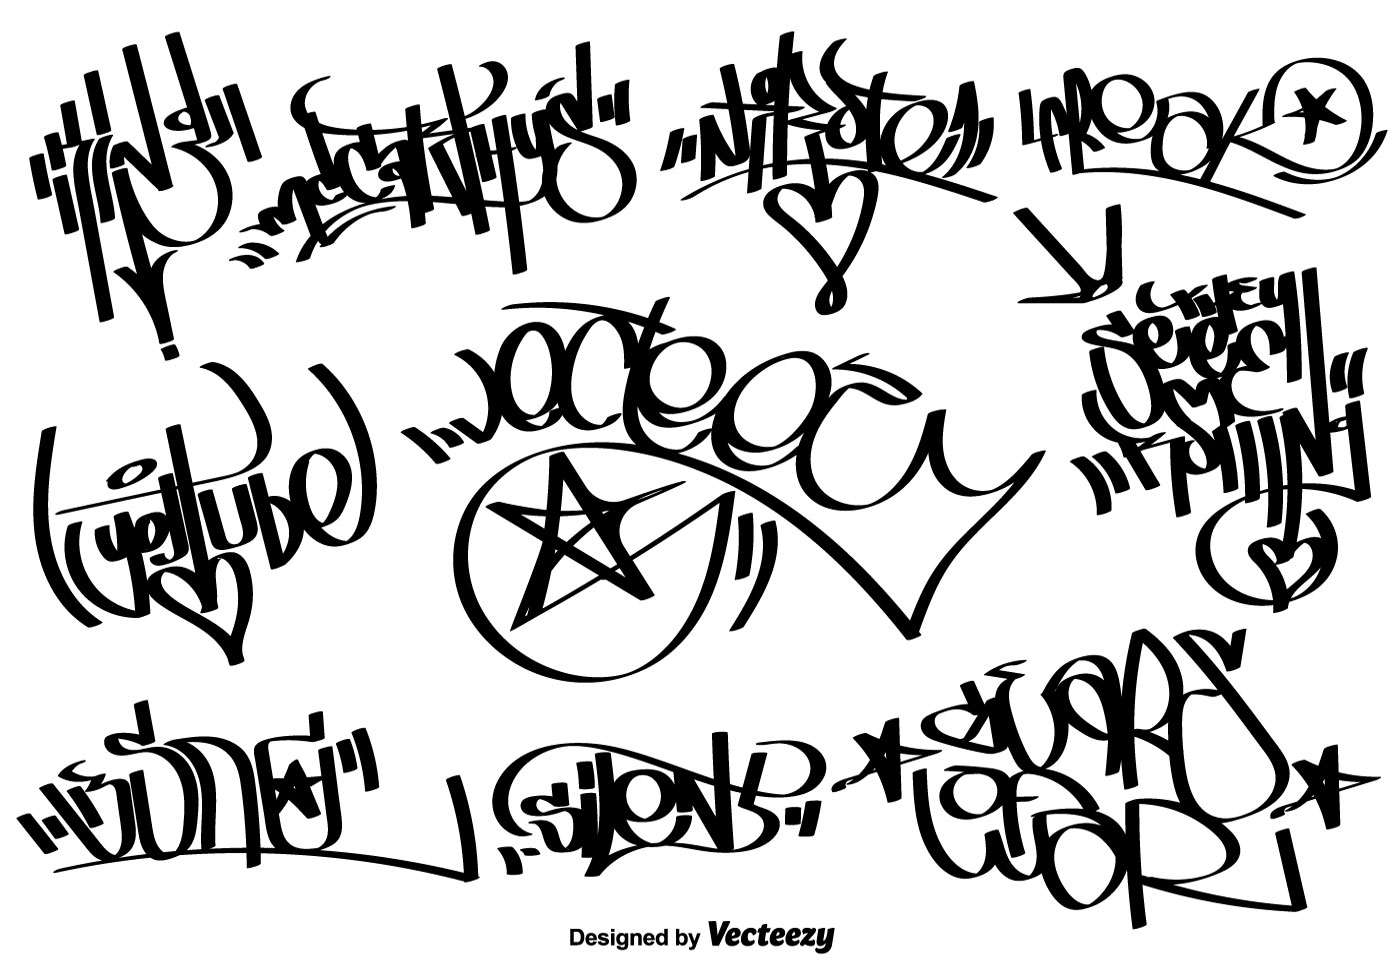 Vector graffiti tags download free vector art stock graphics images